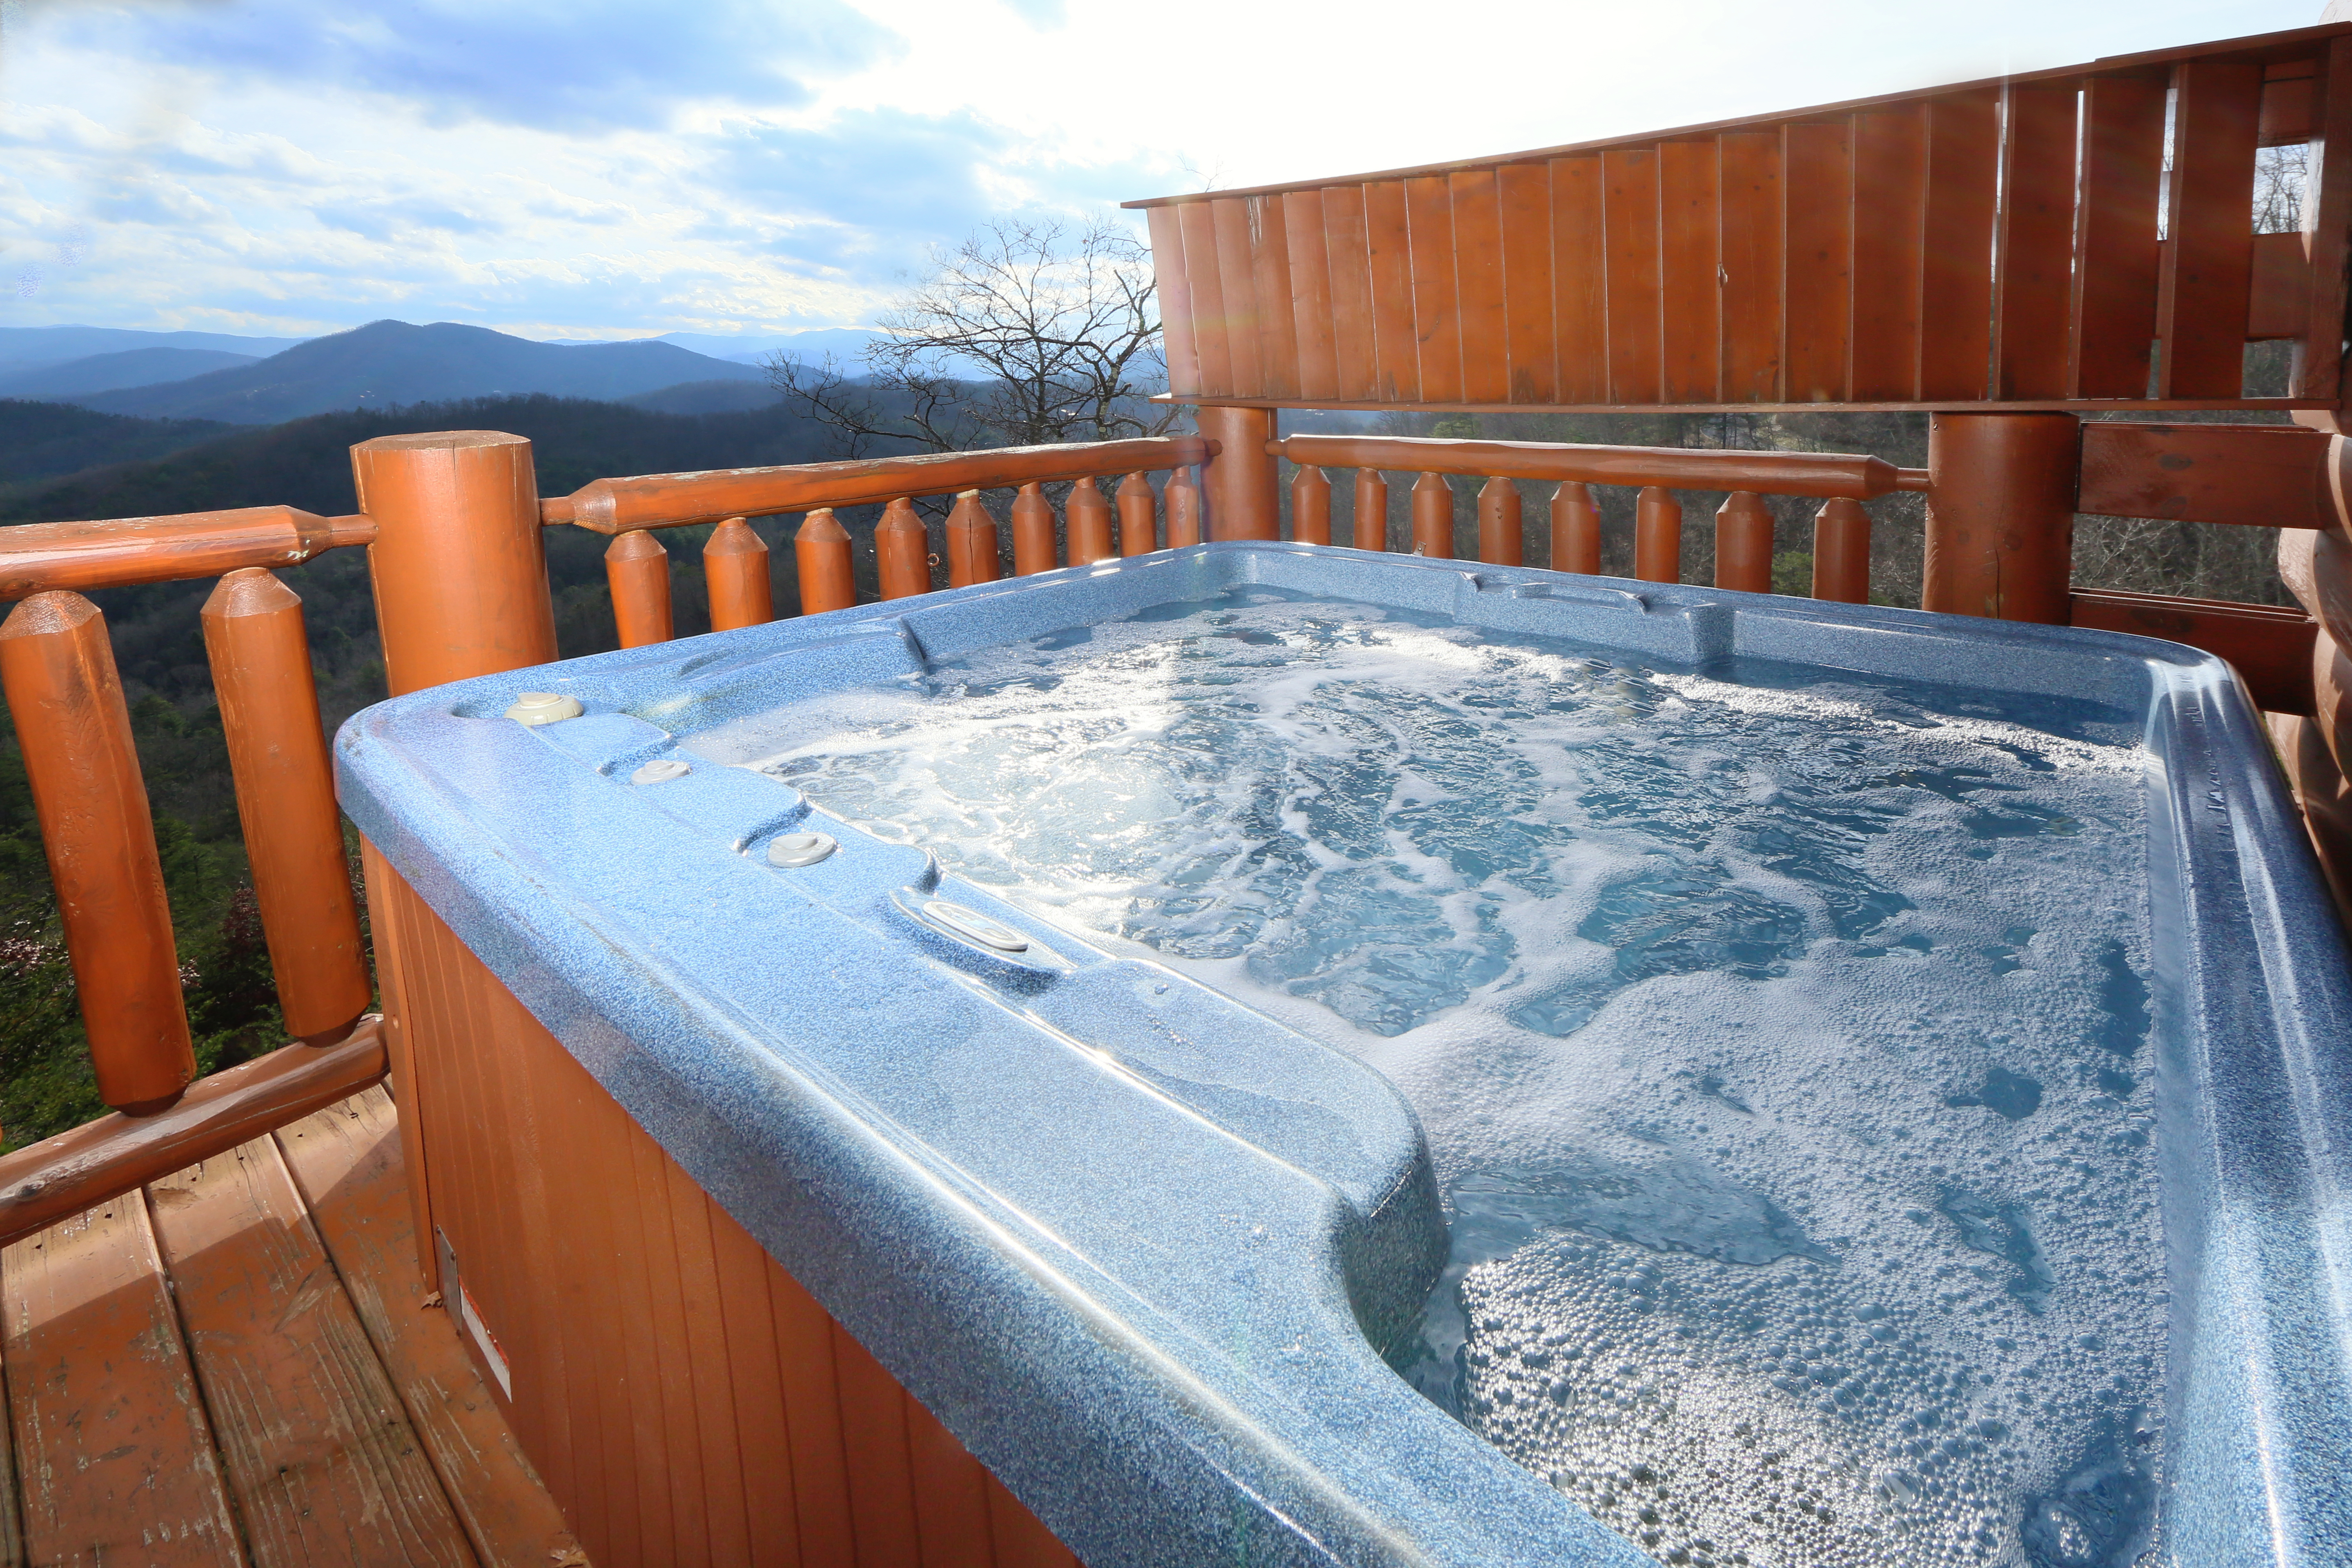 motels affordable tn tub pigeon discount cheap indoor in with hotels tennessee cabins forge under luxury hot gatlinburg pool